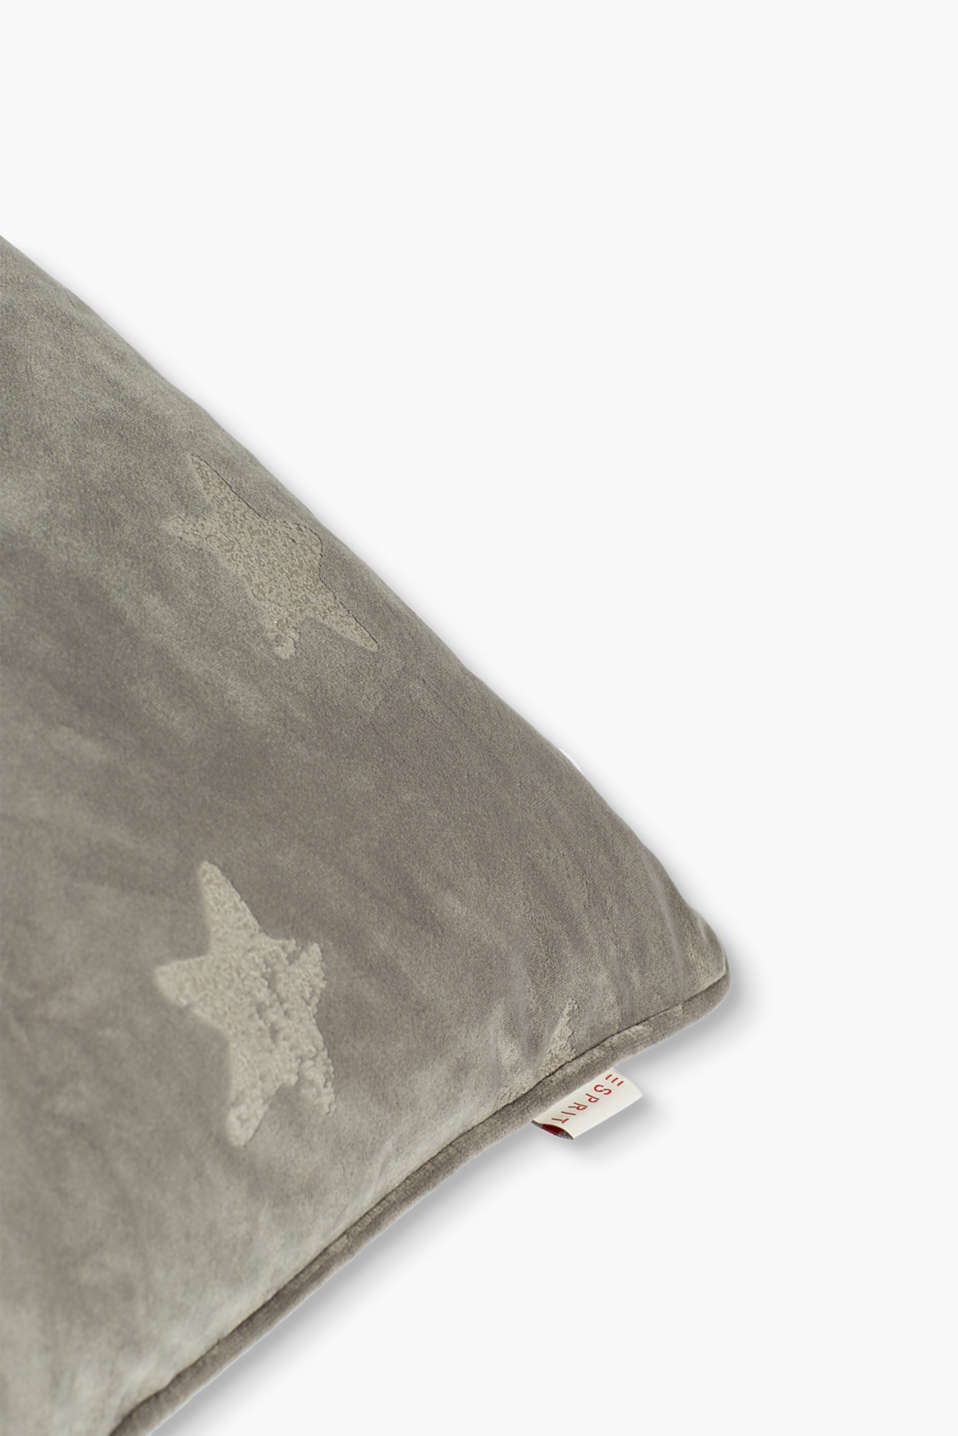 Velvet cushion cover with stars